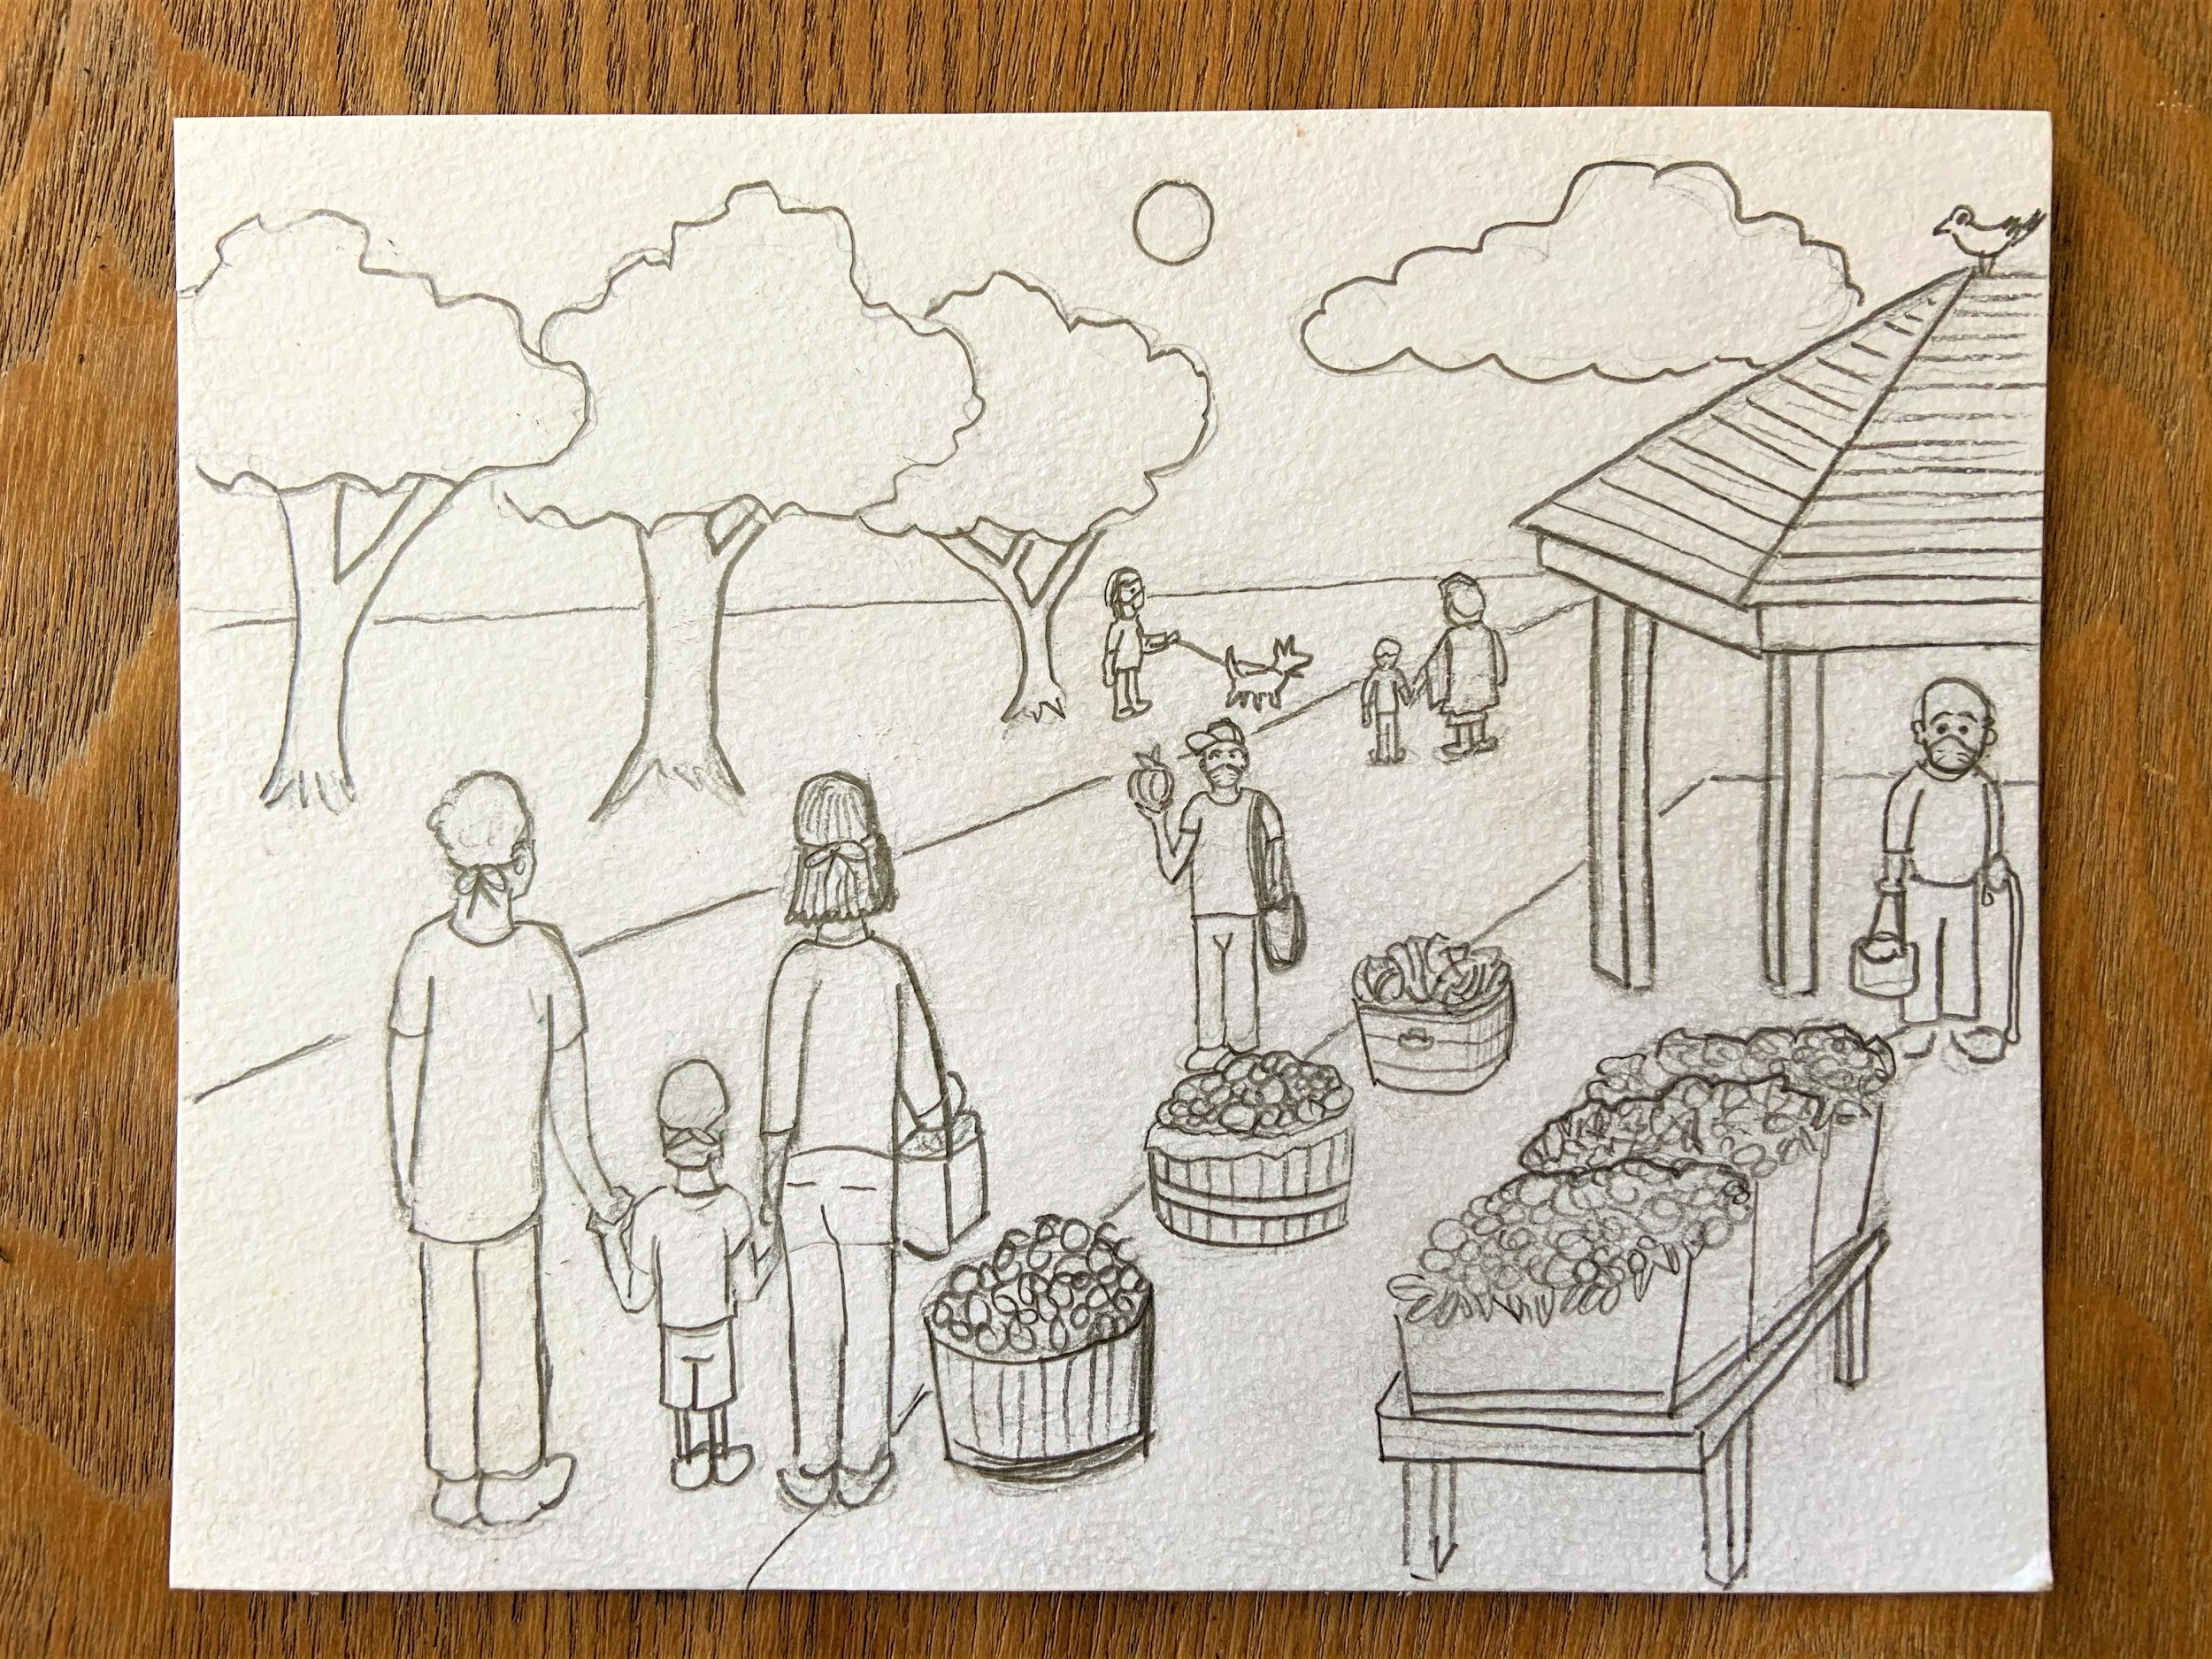 Sketch of a family at an outdoor market surrounded by fruit baskets